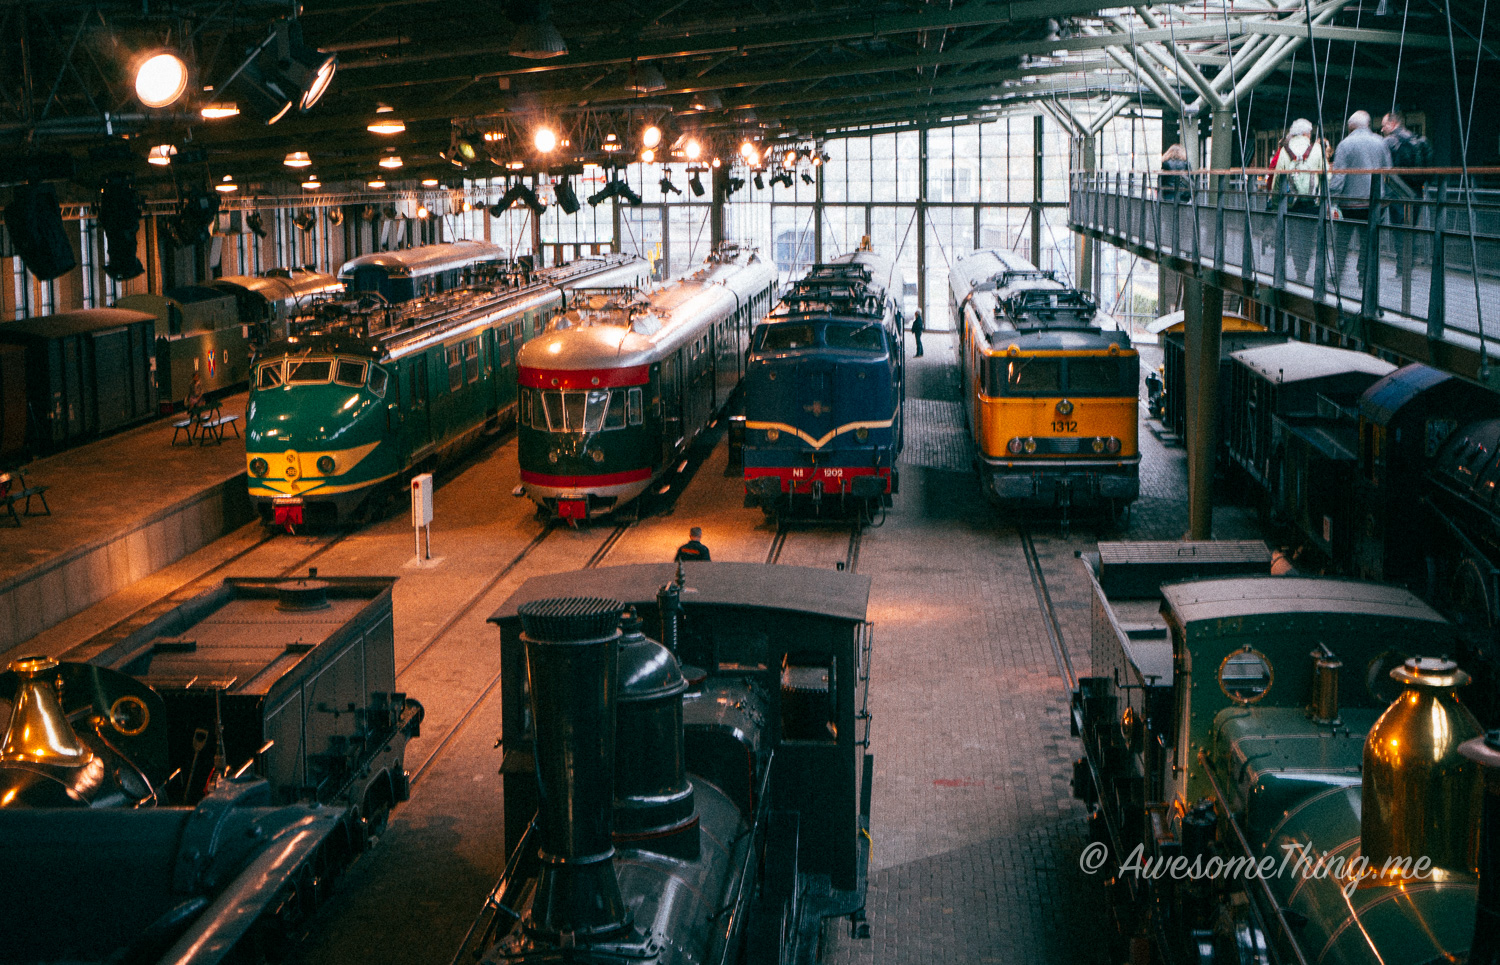 Train Museum Utrecht